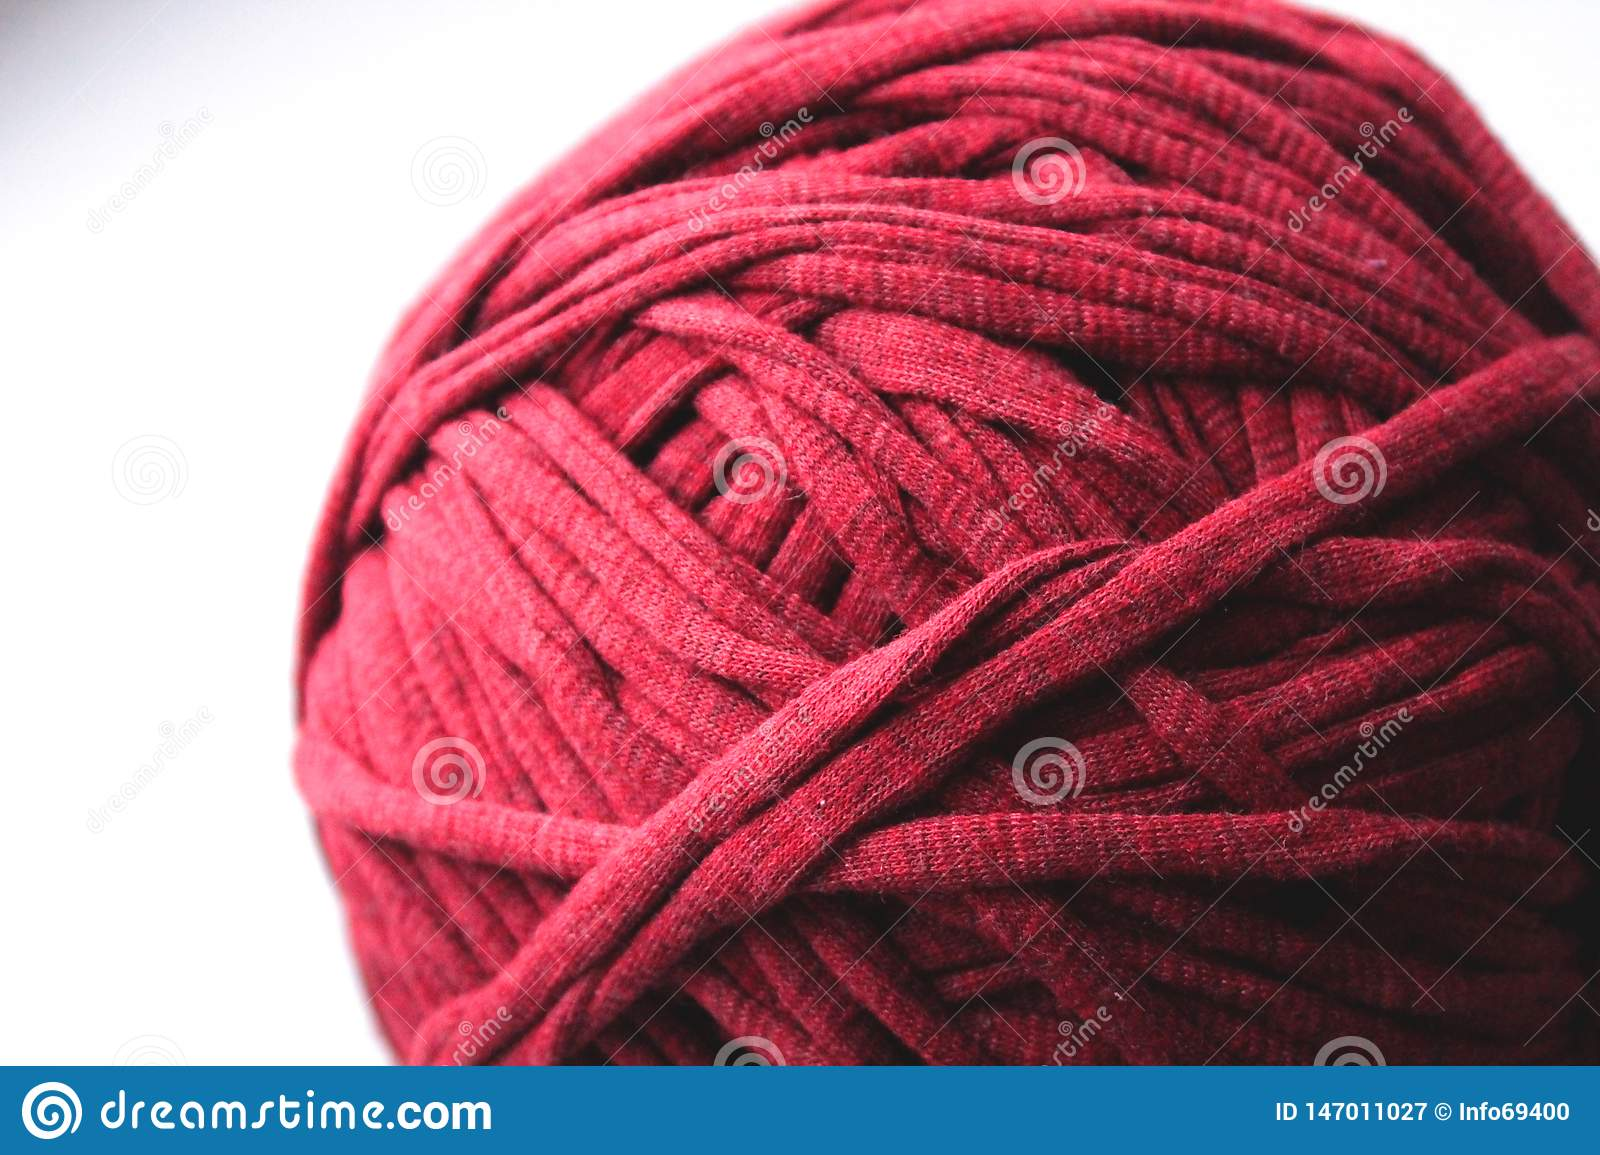 Close up view of red clew thread for knitting